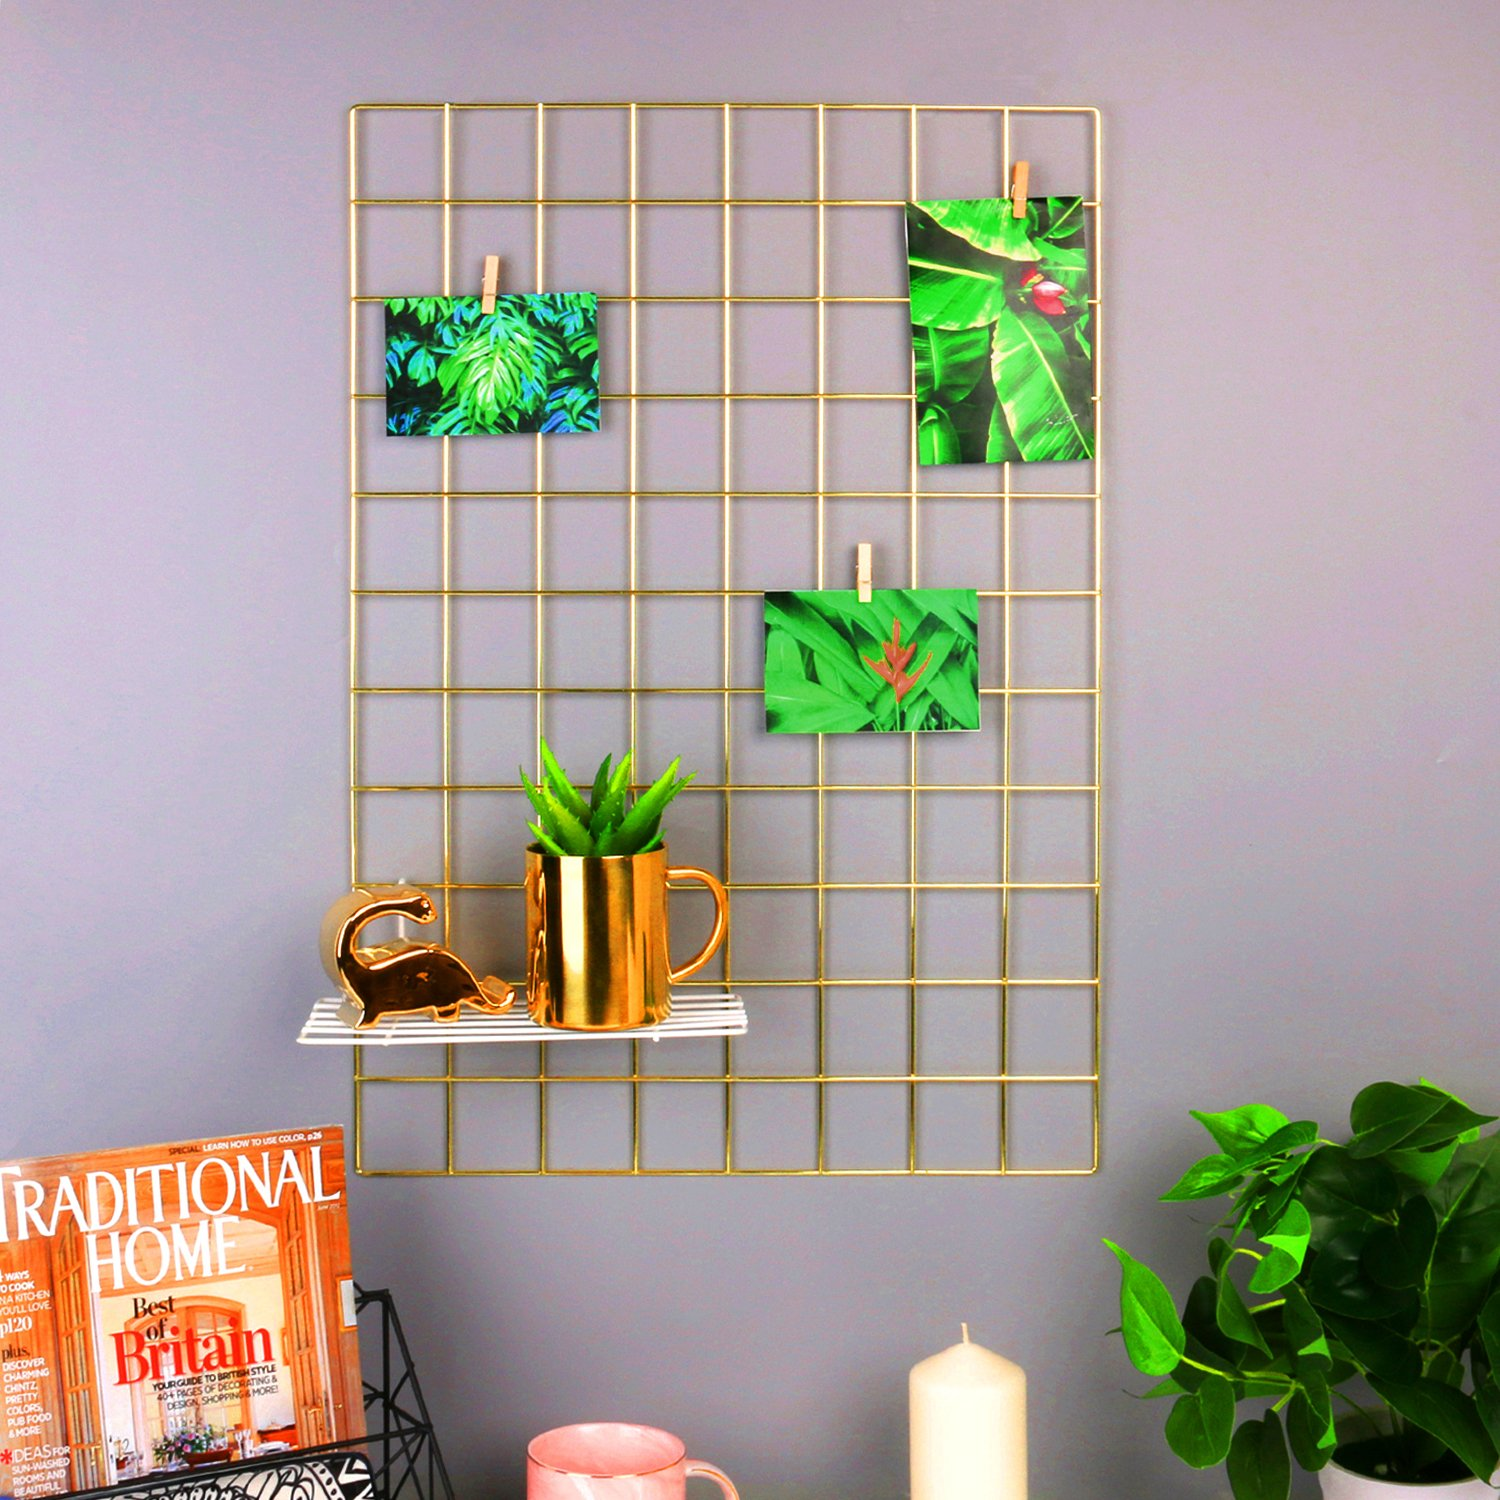 Simmer Stone Gold Wall Grid Panel for Photo Hanging Display & Wall Decoration Organizer, Multi-functional Wall Storage Display Grid, 10 Clips & 4 Nails Offered, Set of 1, 17.7''x 25.6''